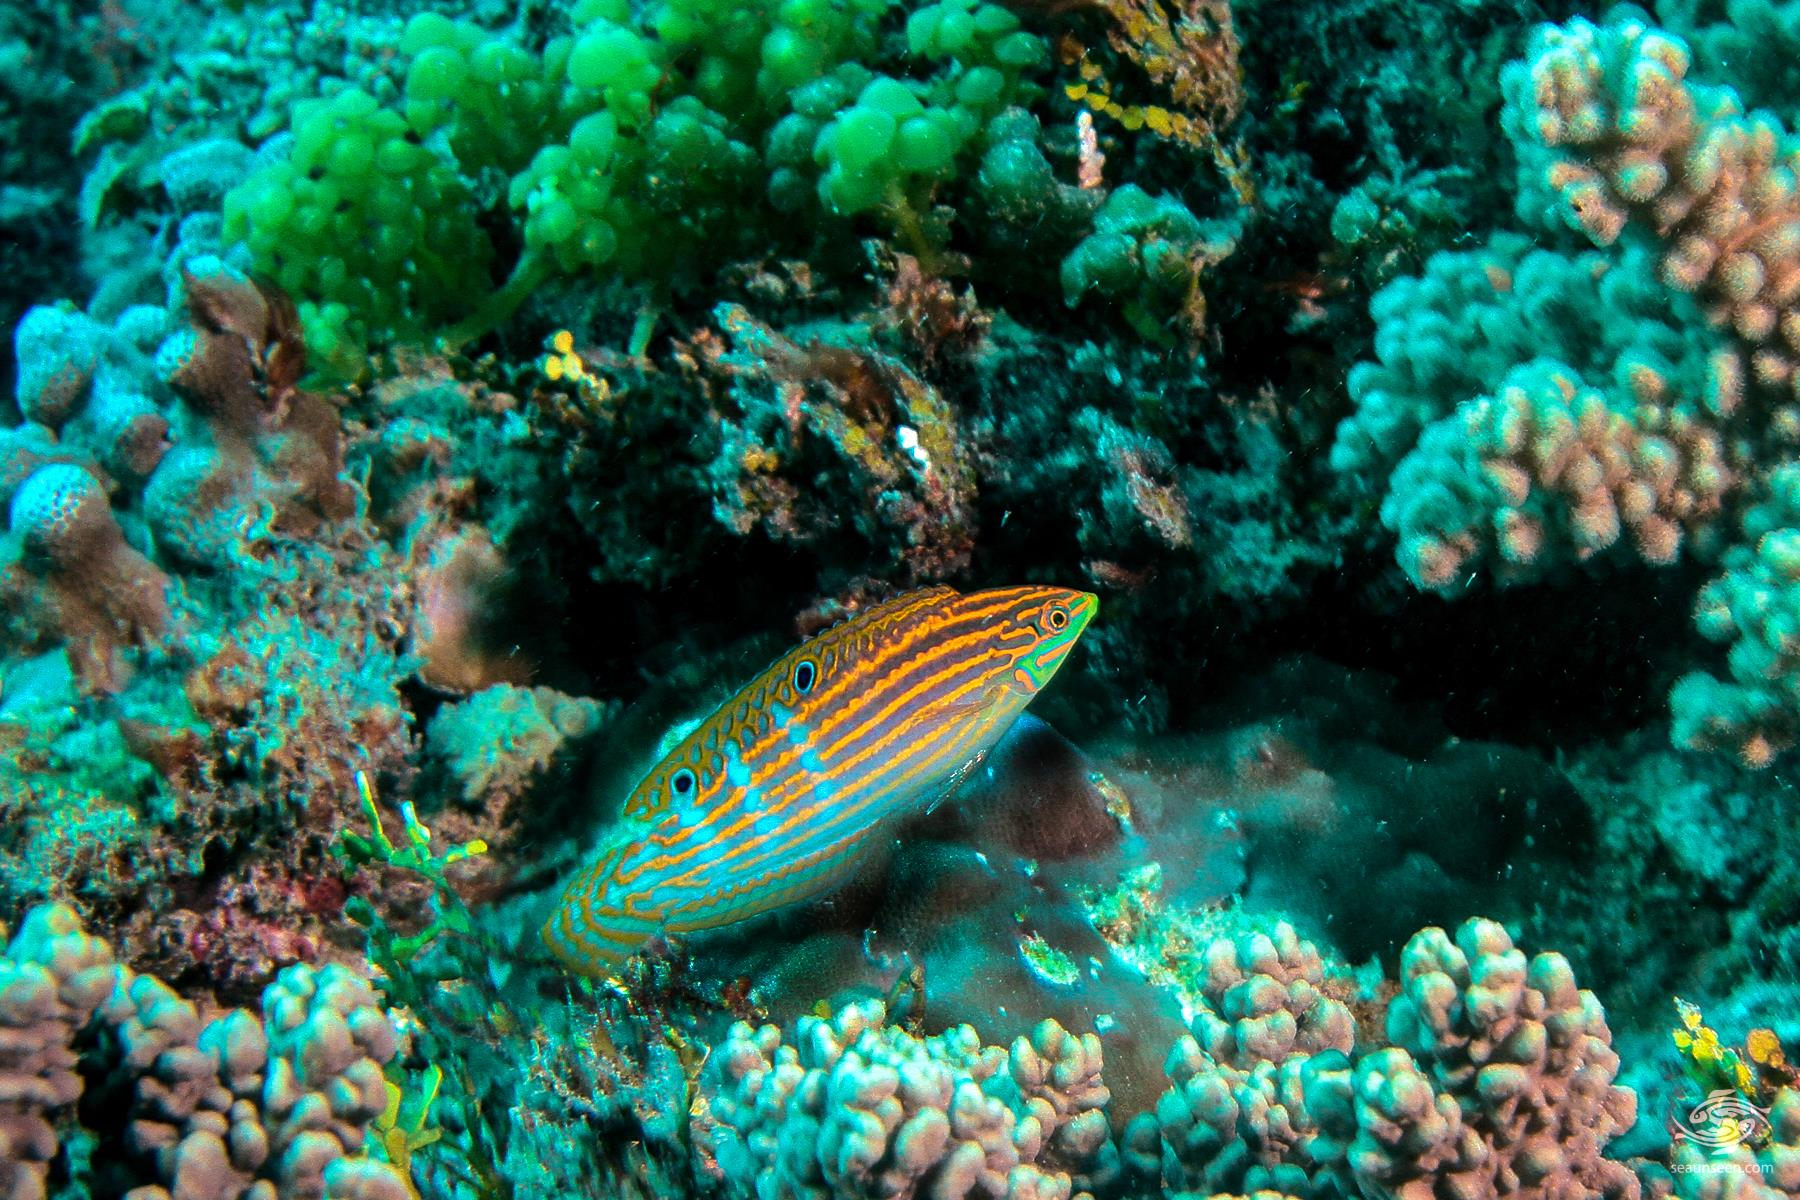 A juvenile Adorned wrasse ( Halichoeres cosmetus) at Powoni near Paje in Zanzibar